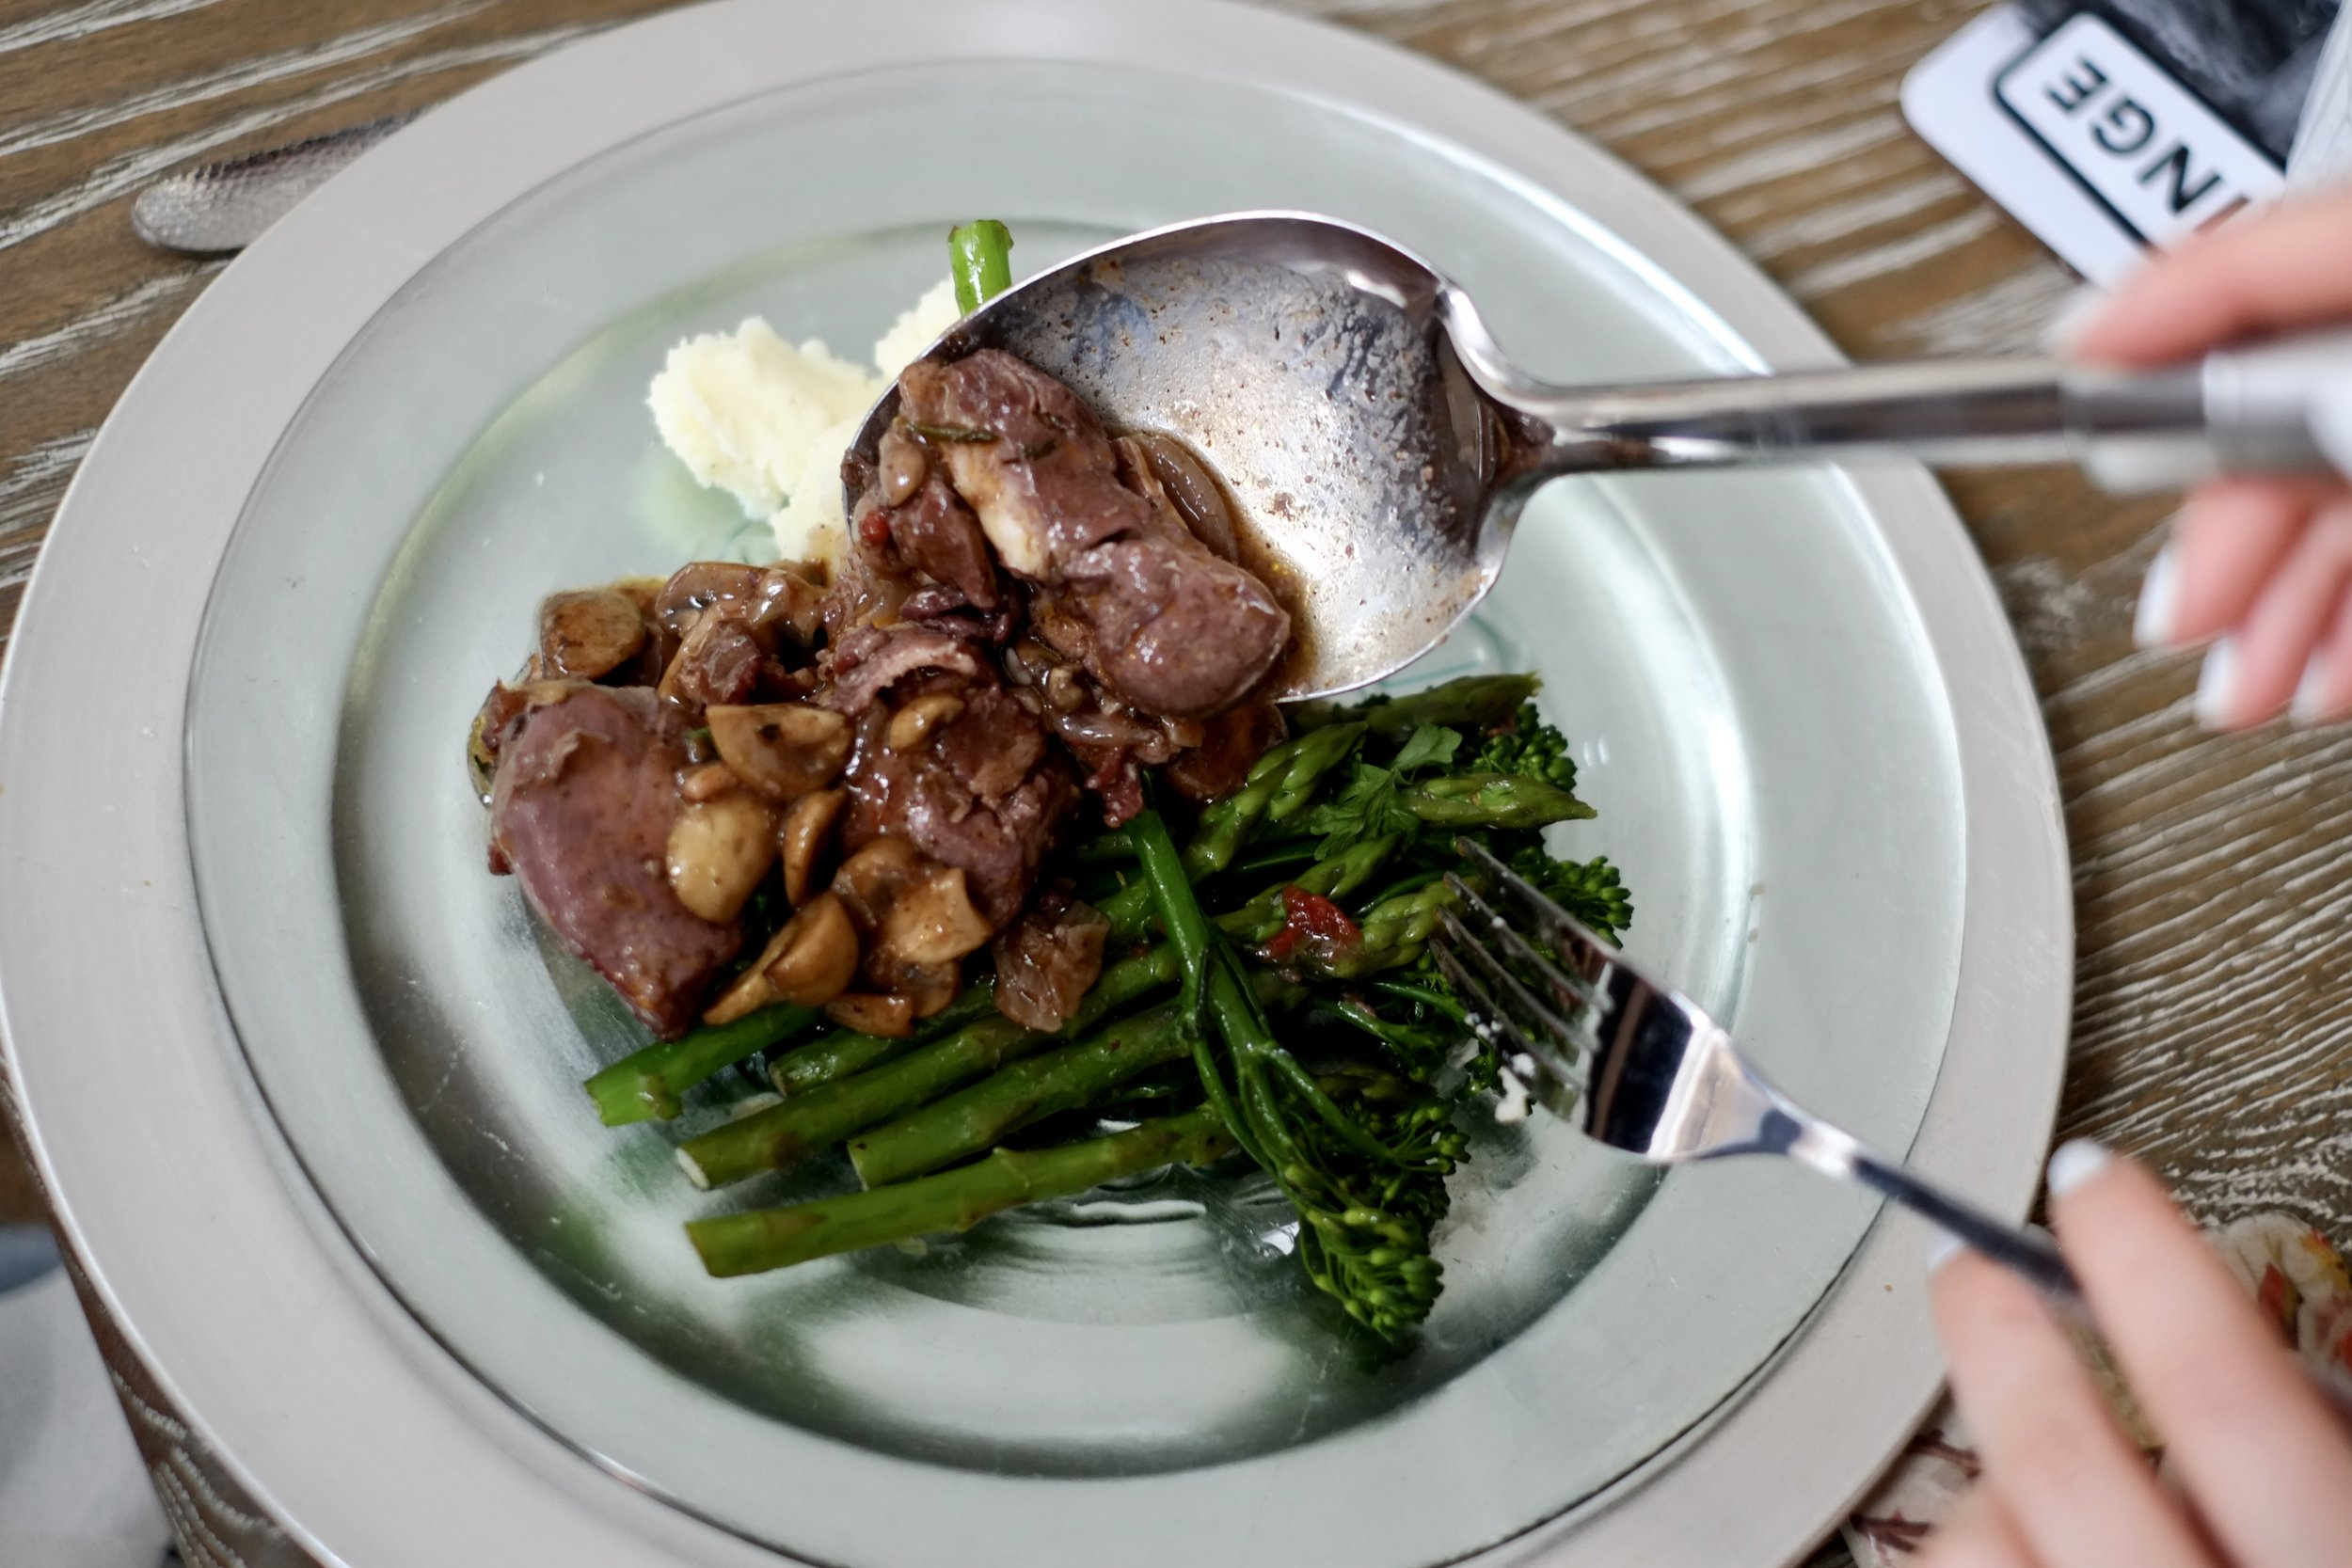 Coq au vin with green beans, asparagus and mashed potato <3